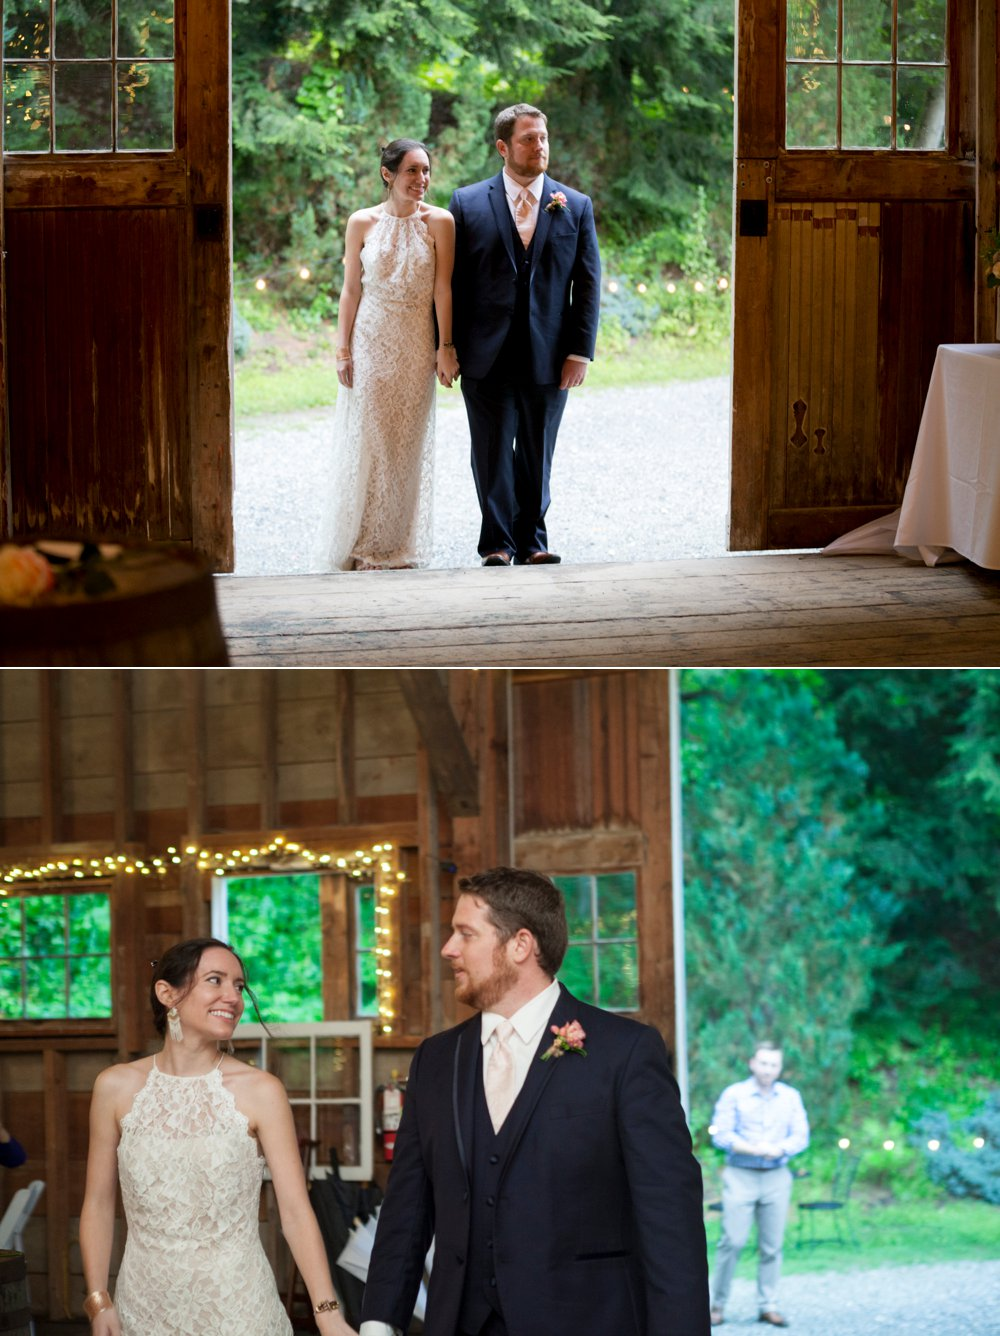 SomerbyJonesPhotography_WestMountainInnWedding_WestMountainInn_RusticVermontWedding_0045.jpg